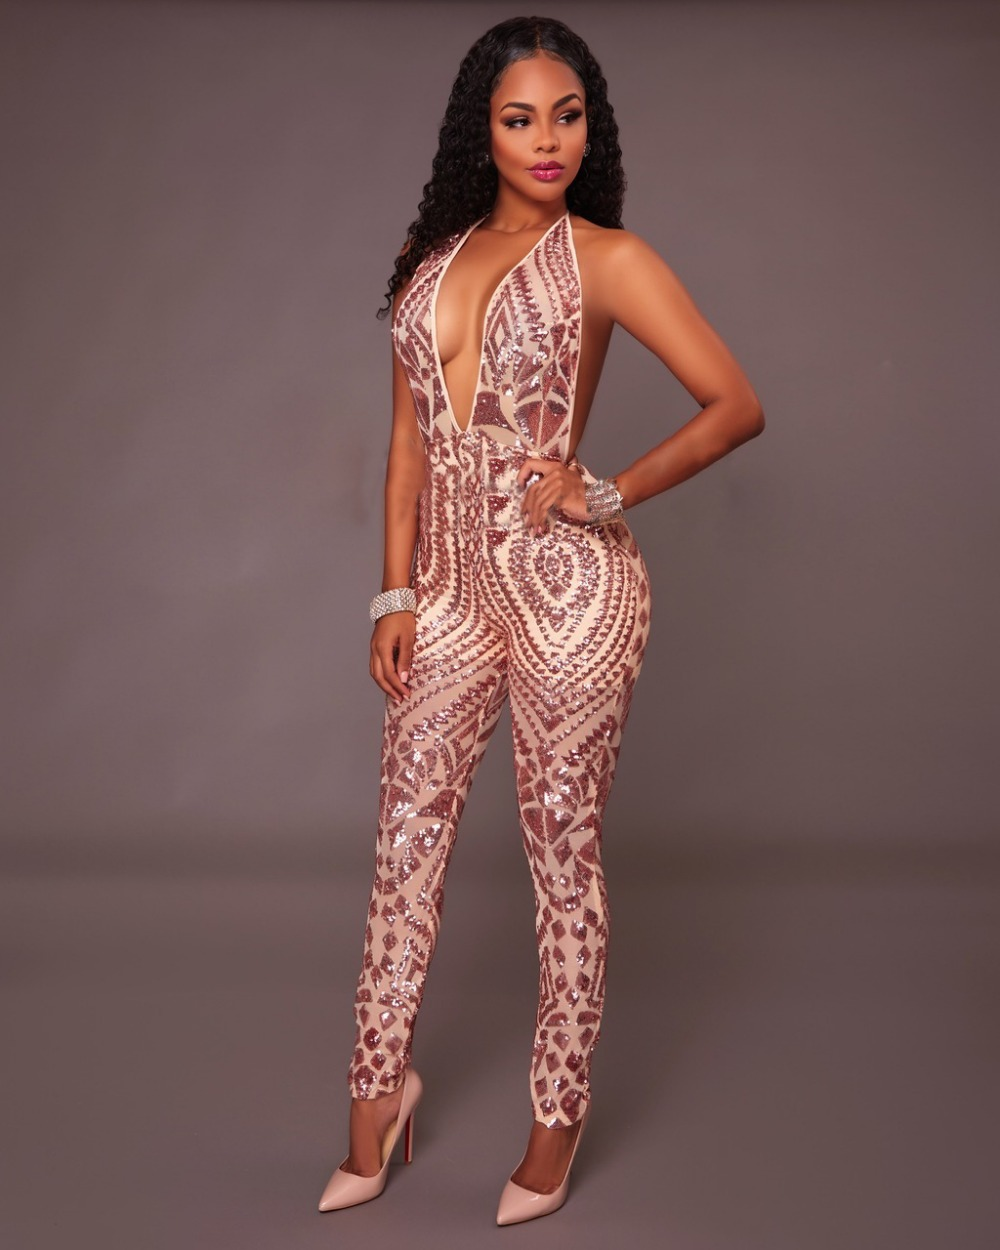 2018 Hot New Fashion Women Sexy Hollow out Jumpsuits Bodysuits Lady Night Club Casual Sequined Playsuits Spring Vesitdos Rompers